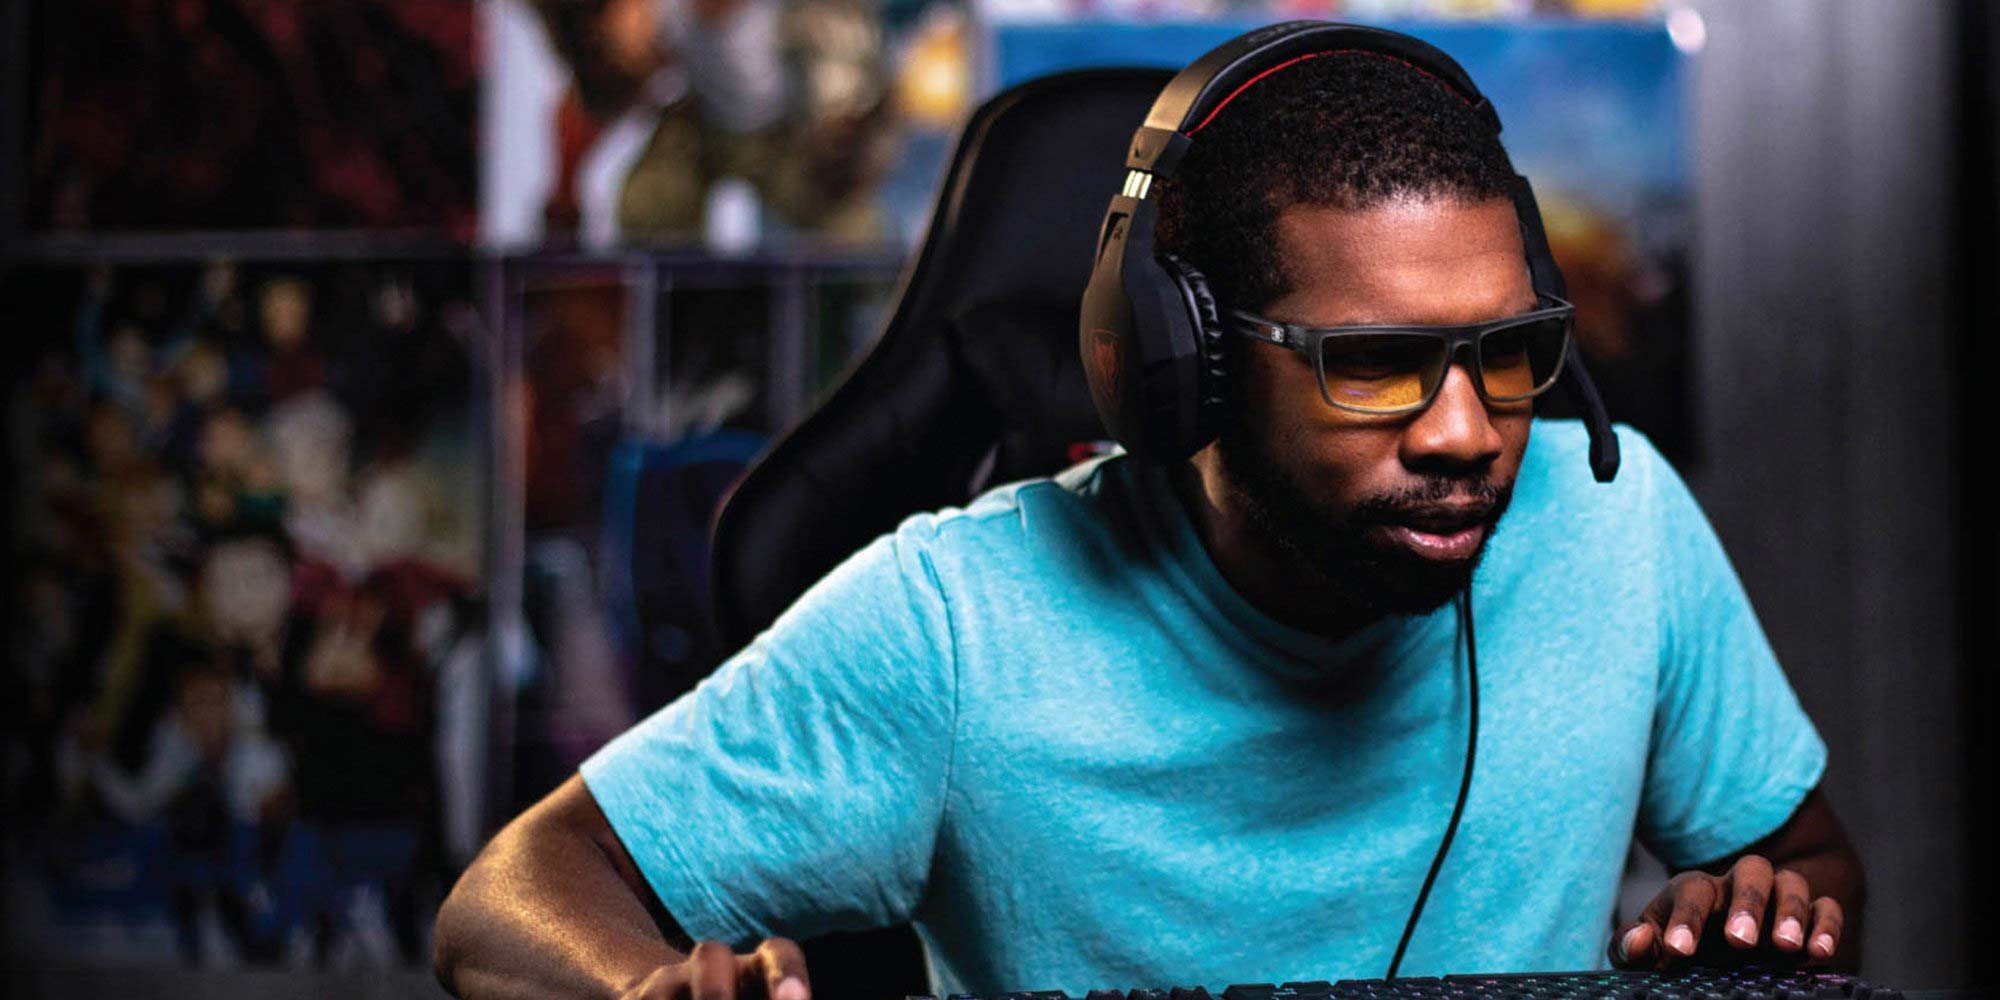 gn gaming valve smoke amber optimized - Gunnar Optiks supports veteran nonprofit OSD with philanthropic match initiative